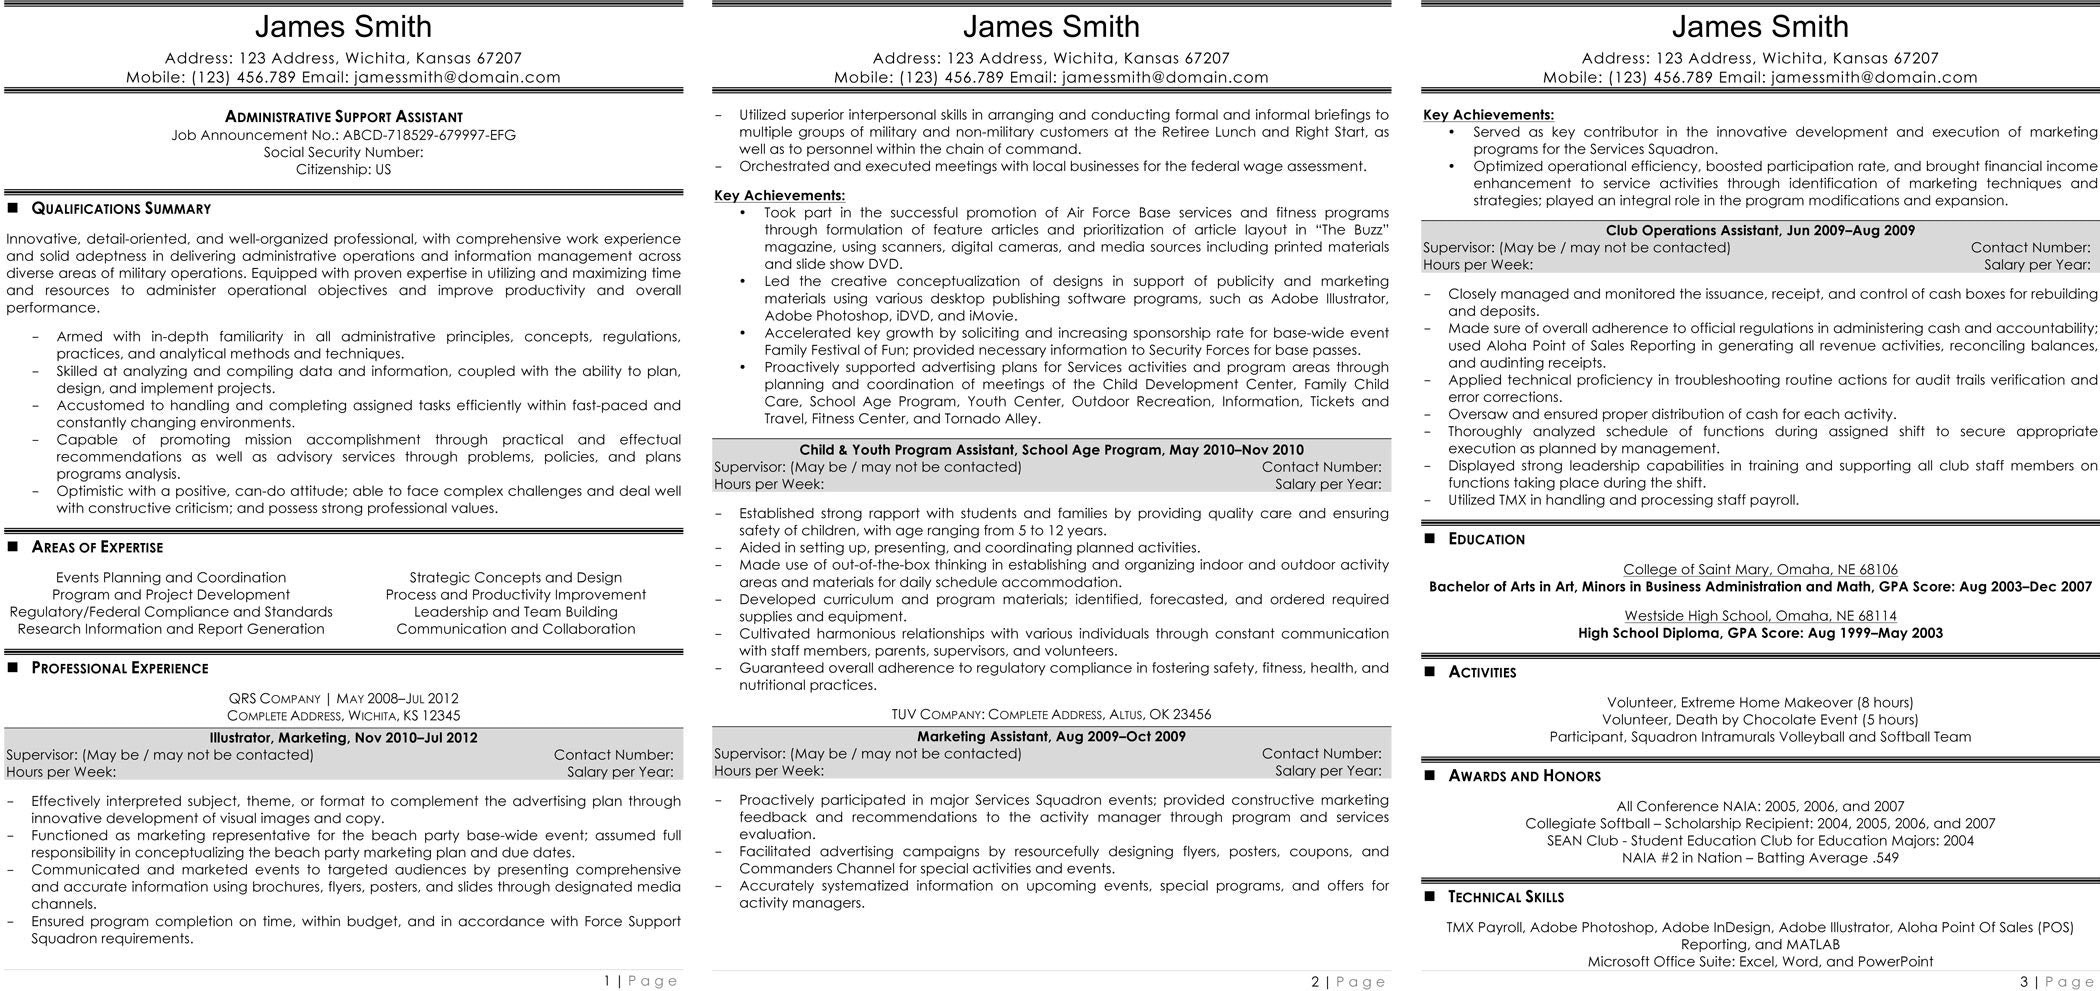 Executive assistant Resume - Executive assistant Resume Fresh Resume Template Executive assistant